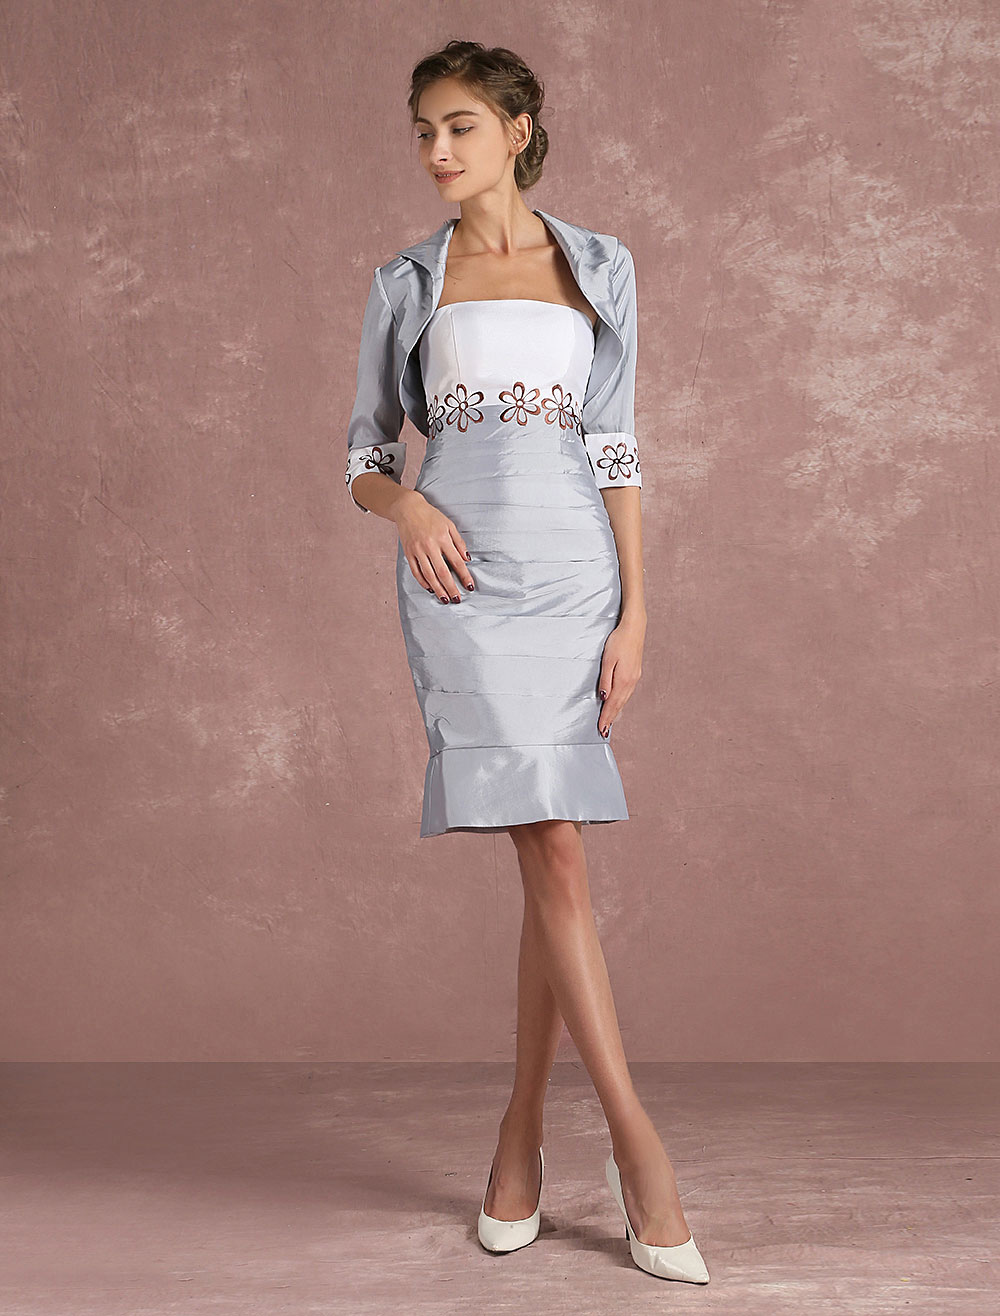 a119cbd8956 ... Mother Of The Bride Dress Silver Taffeta Sheath Cocktail Dress 2 Piece  Embroidered Short Party Dress. 12. 45%OFF. Color Silver